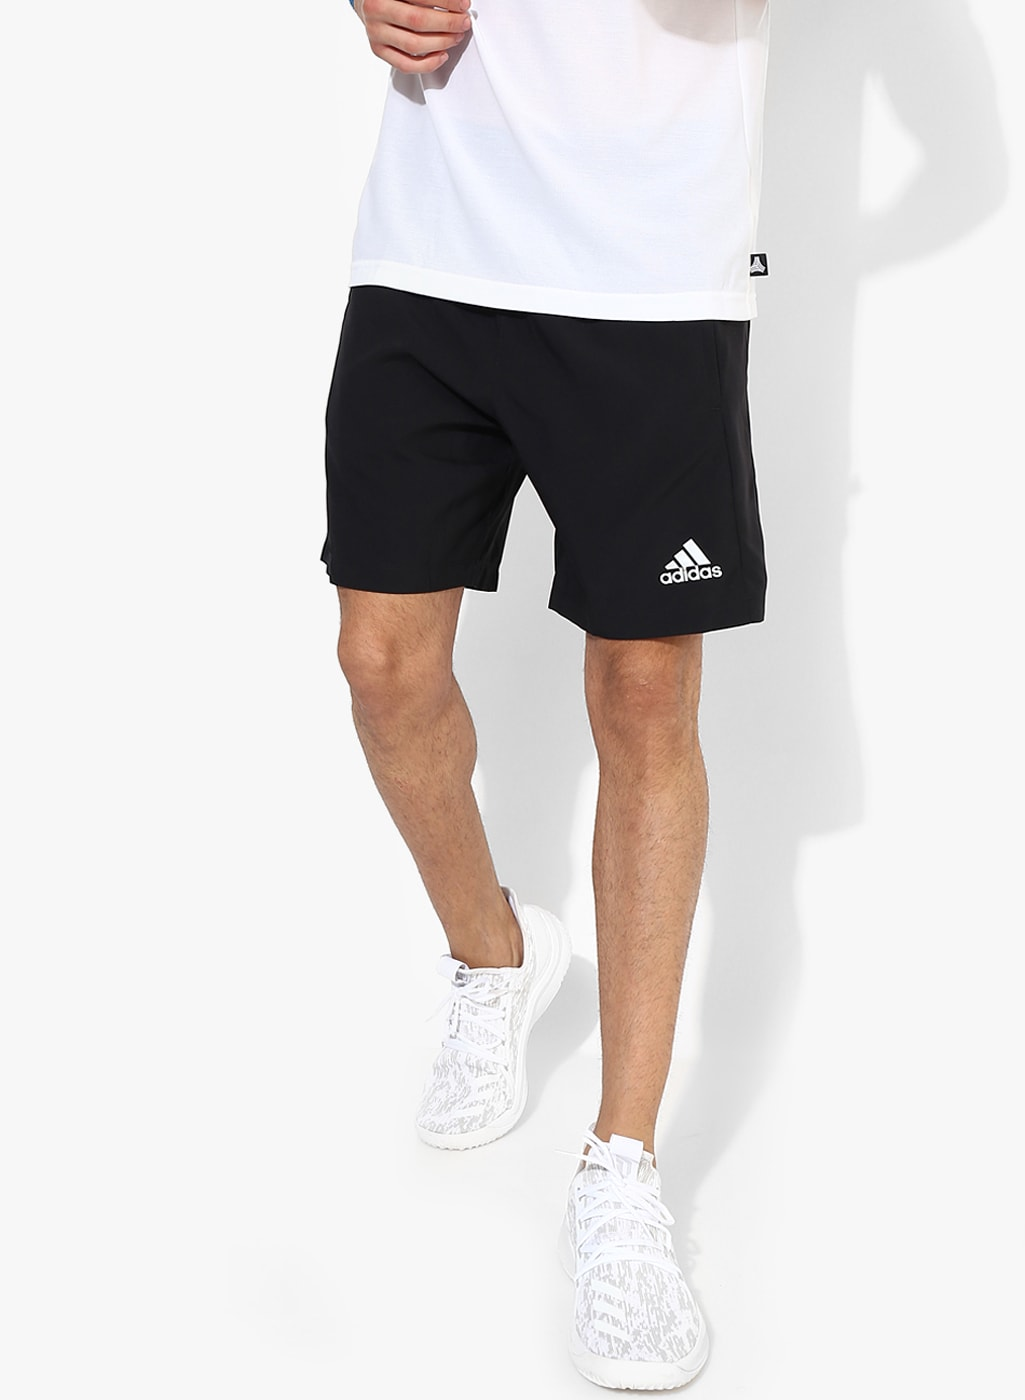 6c5f471db adidas - Exclusive adidas Online Store in India at Myntra